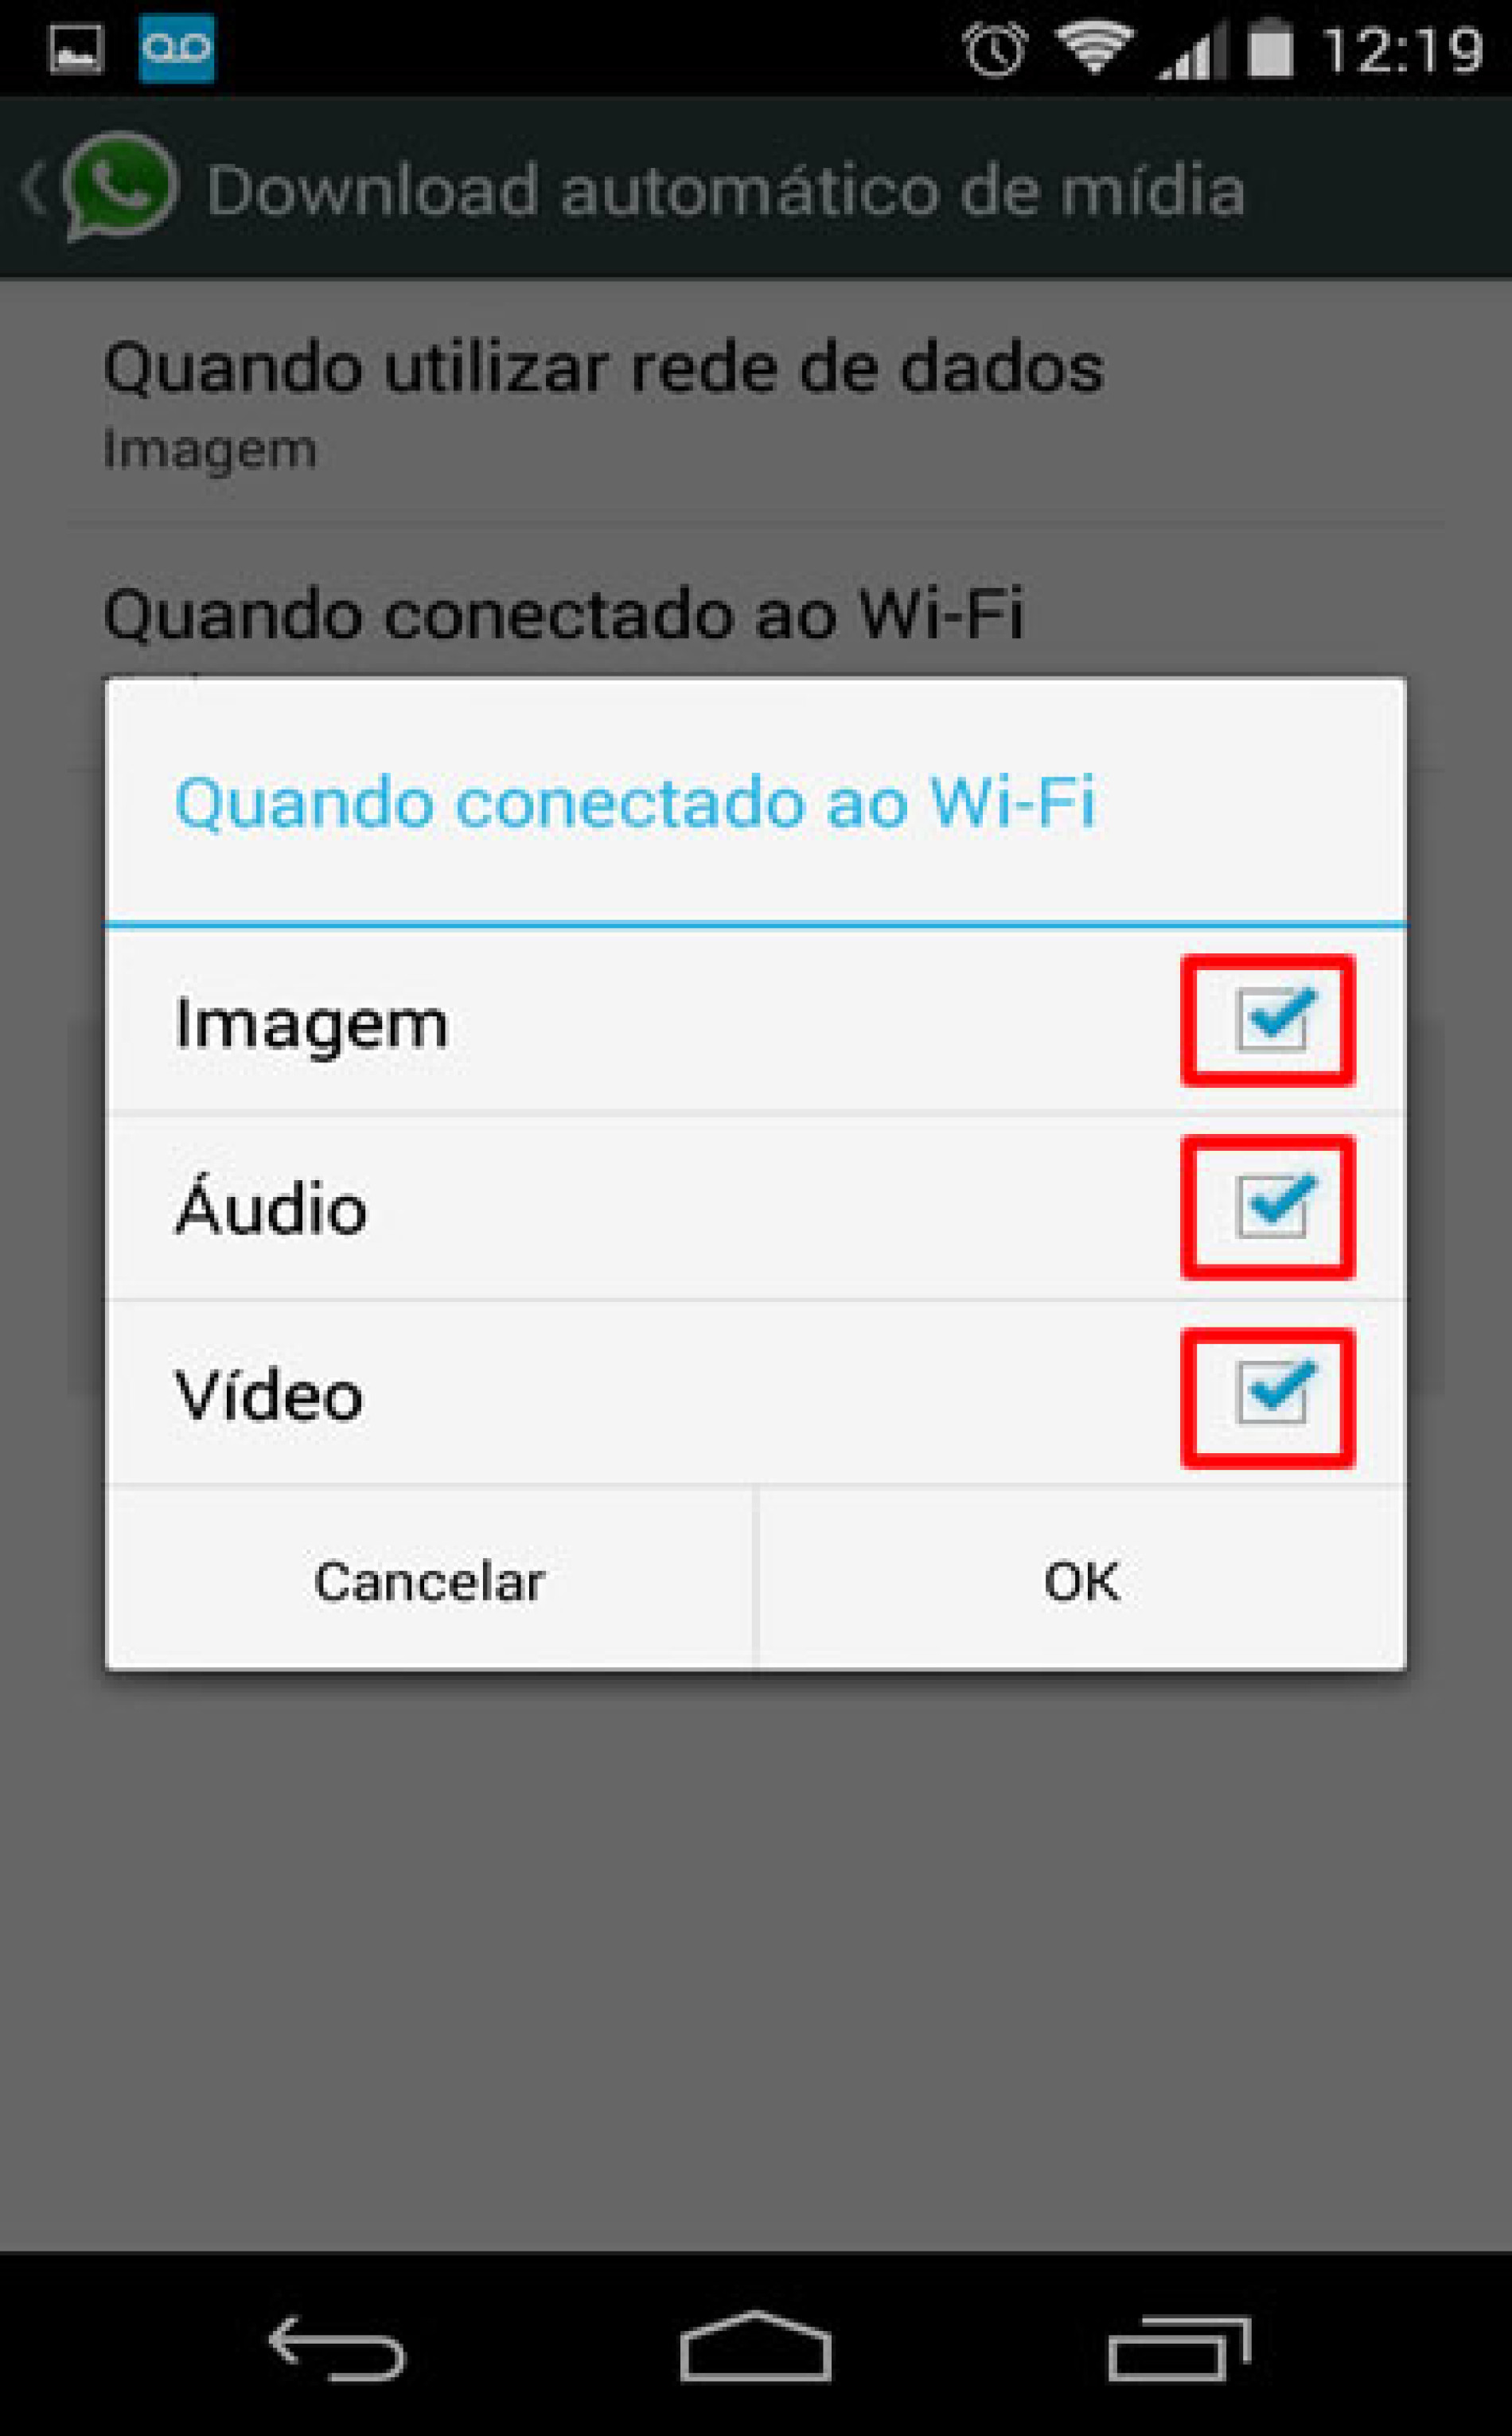 Whatsapp: Como desligar o download automático de fotos e vídeos